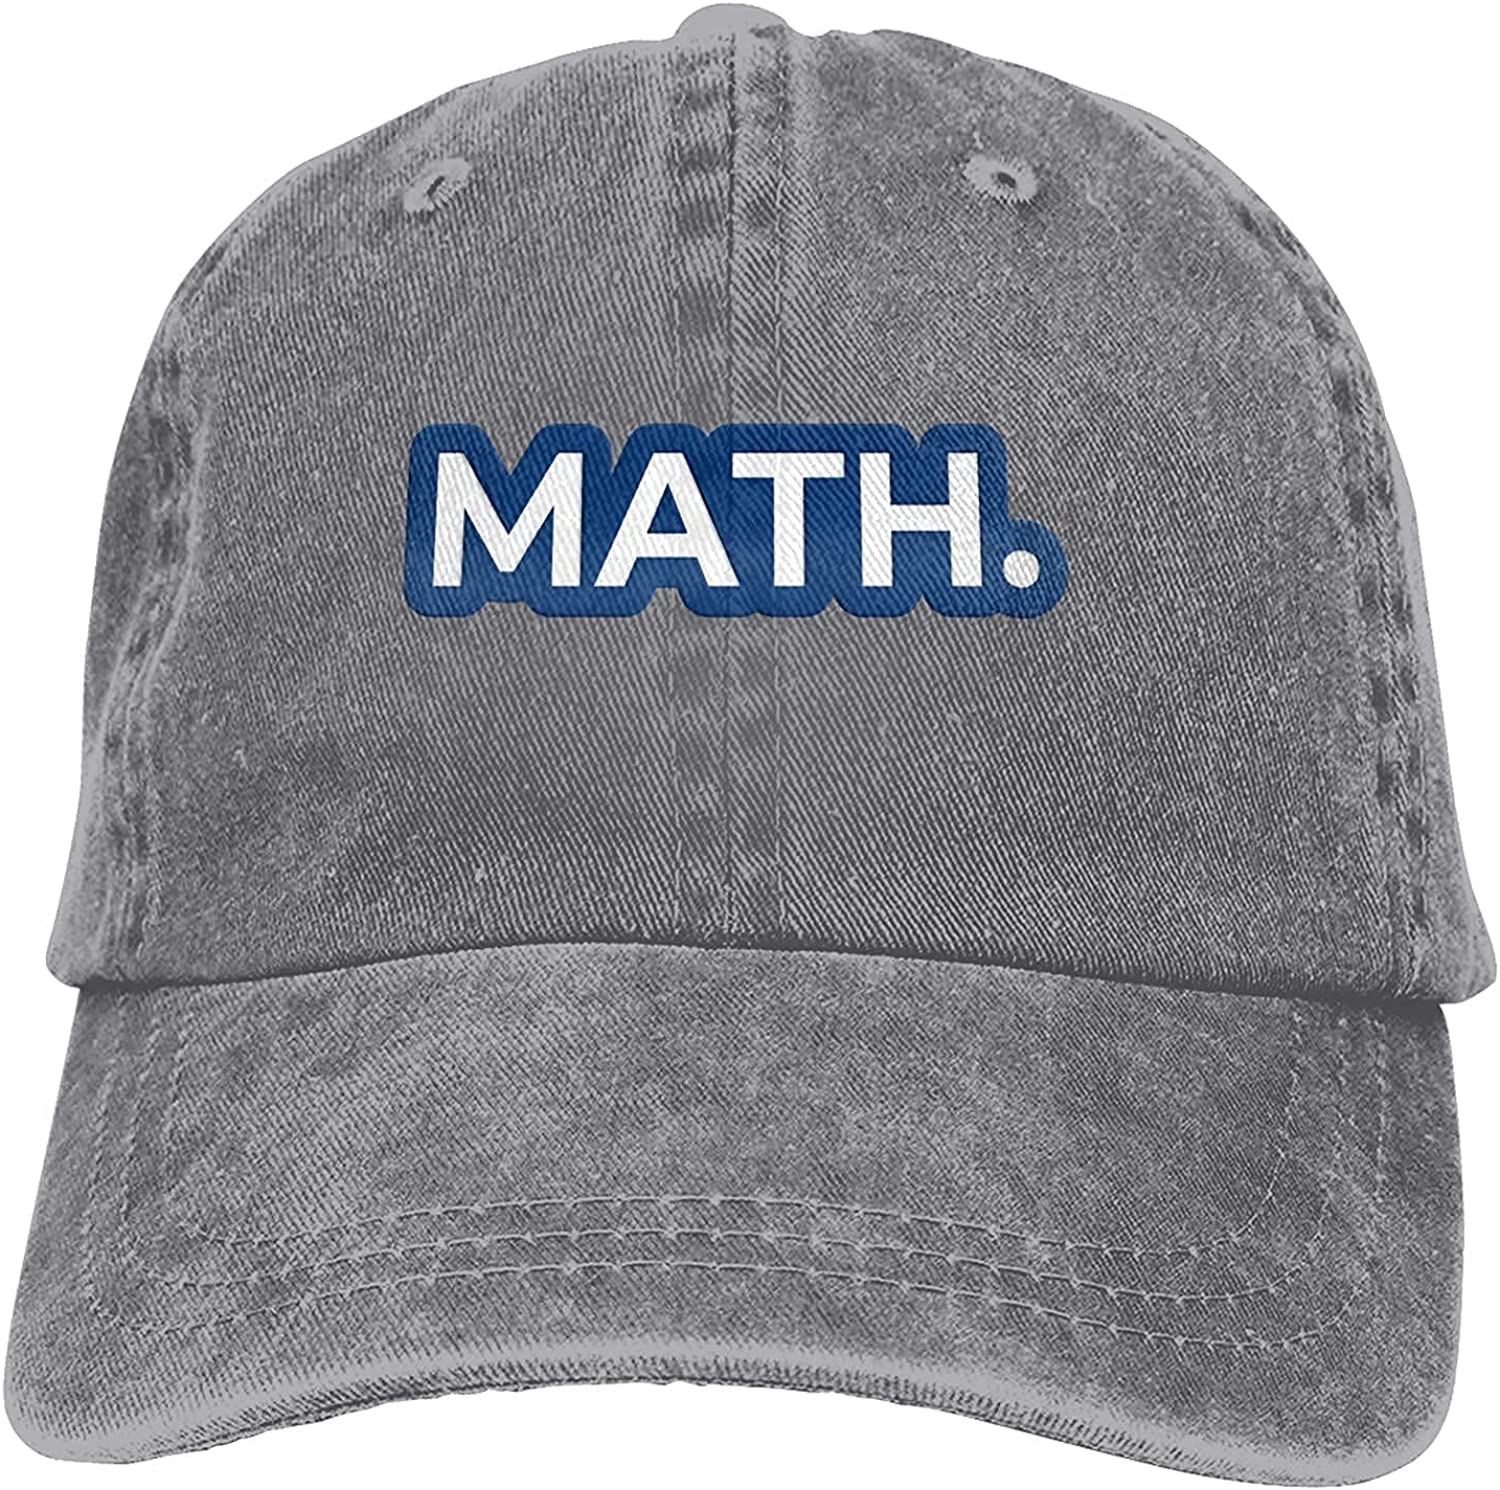 Math Andrew Yang Outdoor Men's Baseball Cap Sports and Leisure Adjustable Cowboy Hat Performance Cap Red